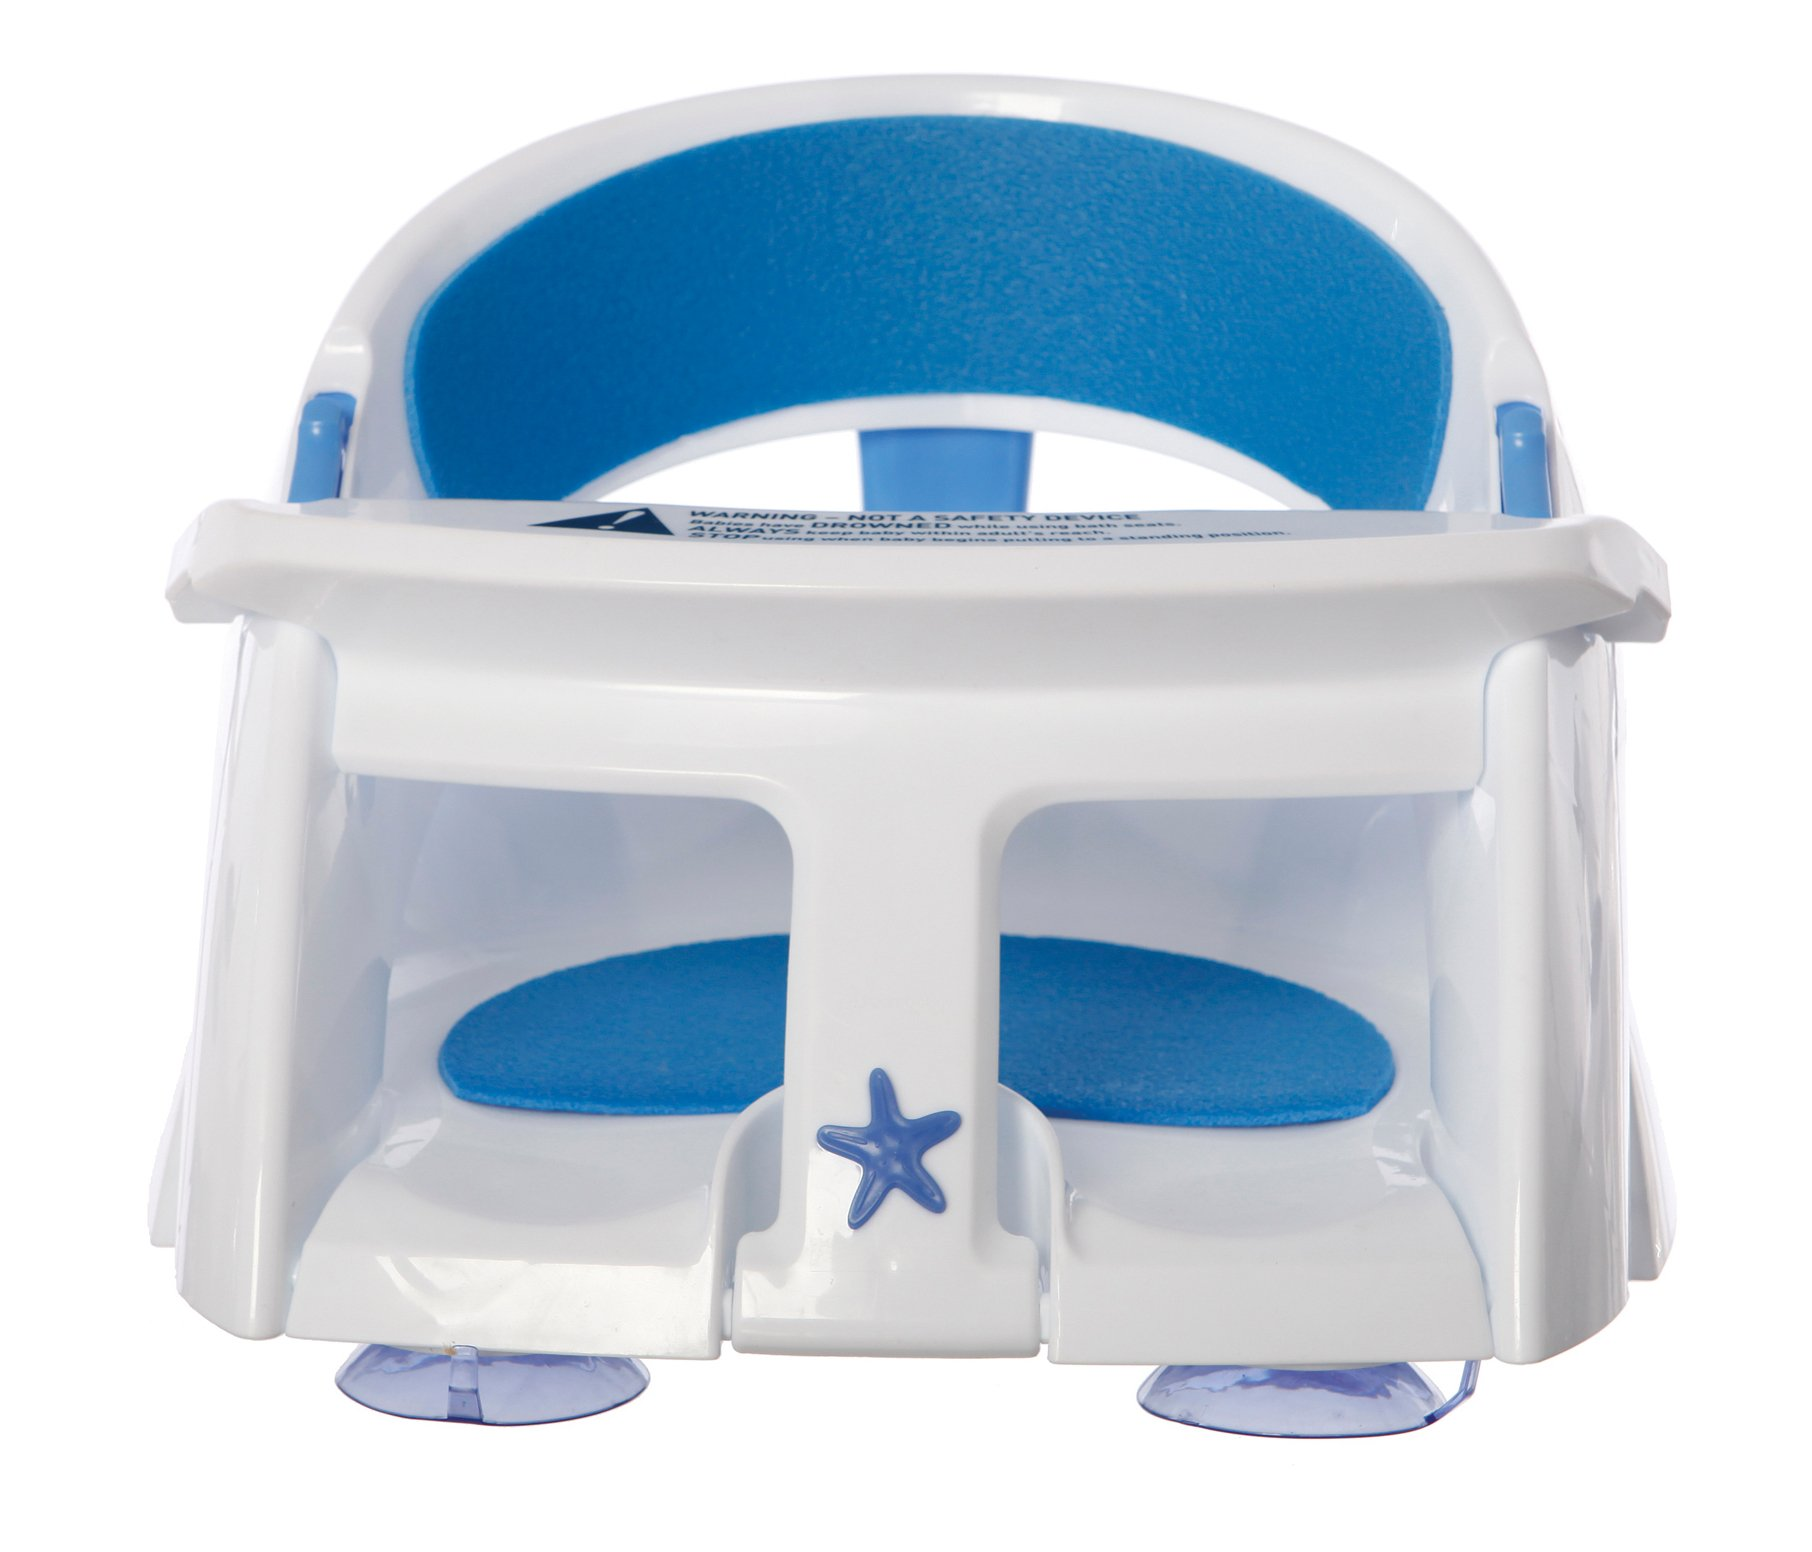 Dreambaby Super Comfy Bath Seat With Heat Sensing Indicator (6 to 24 months - White)